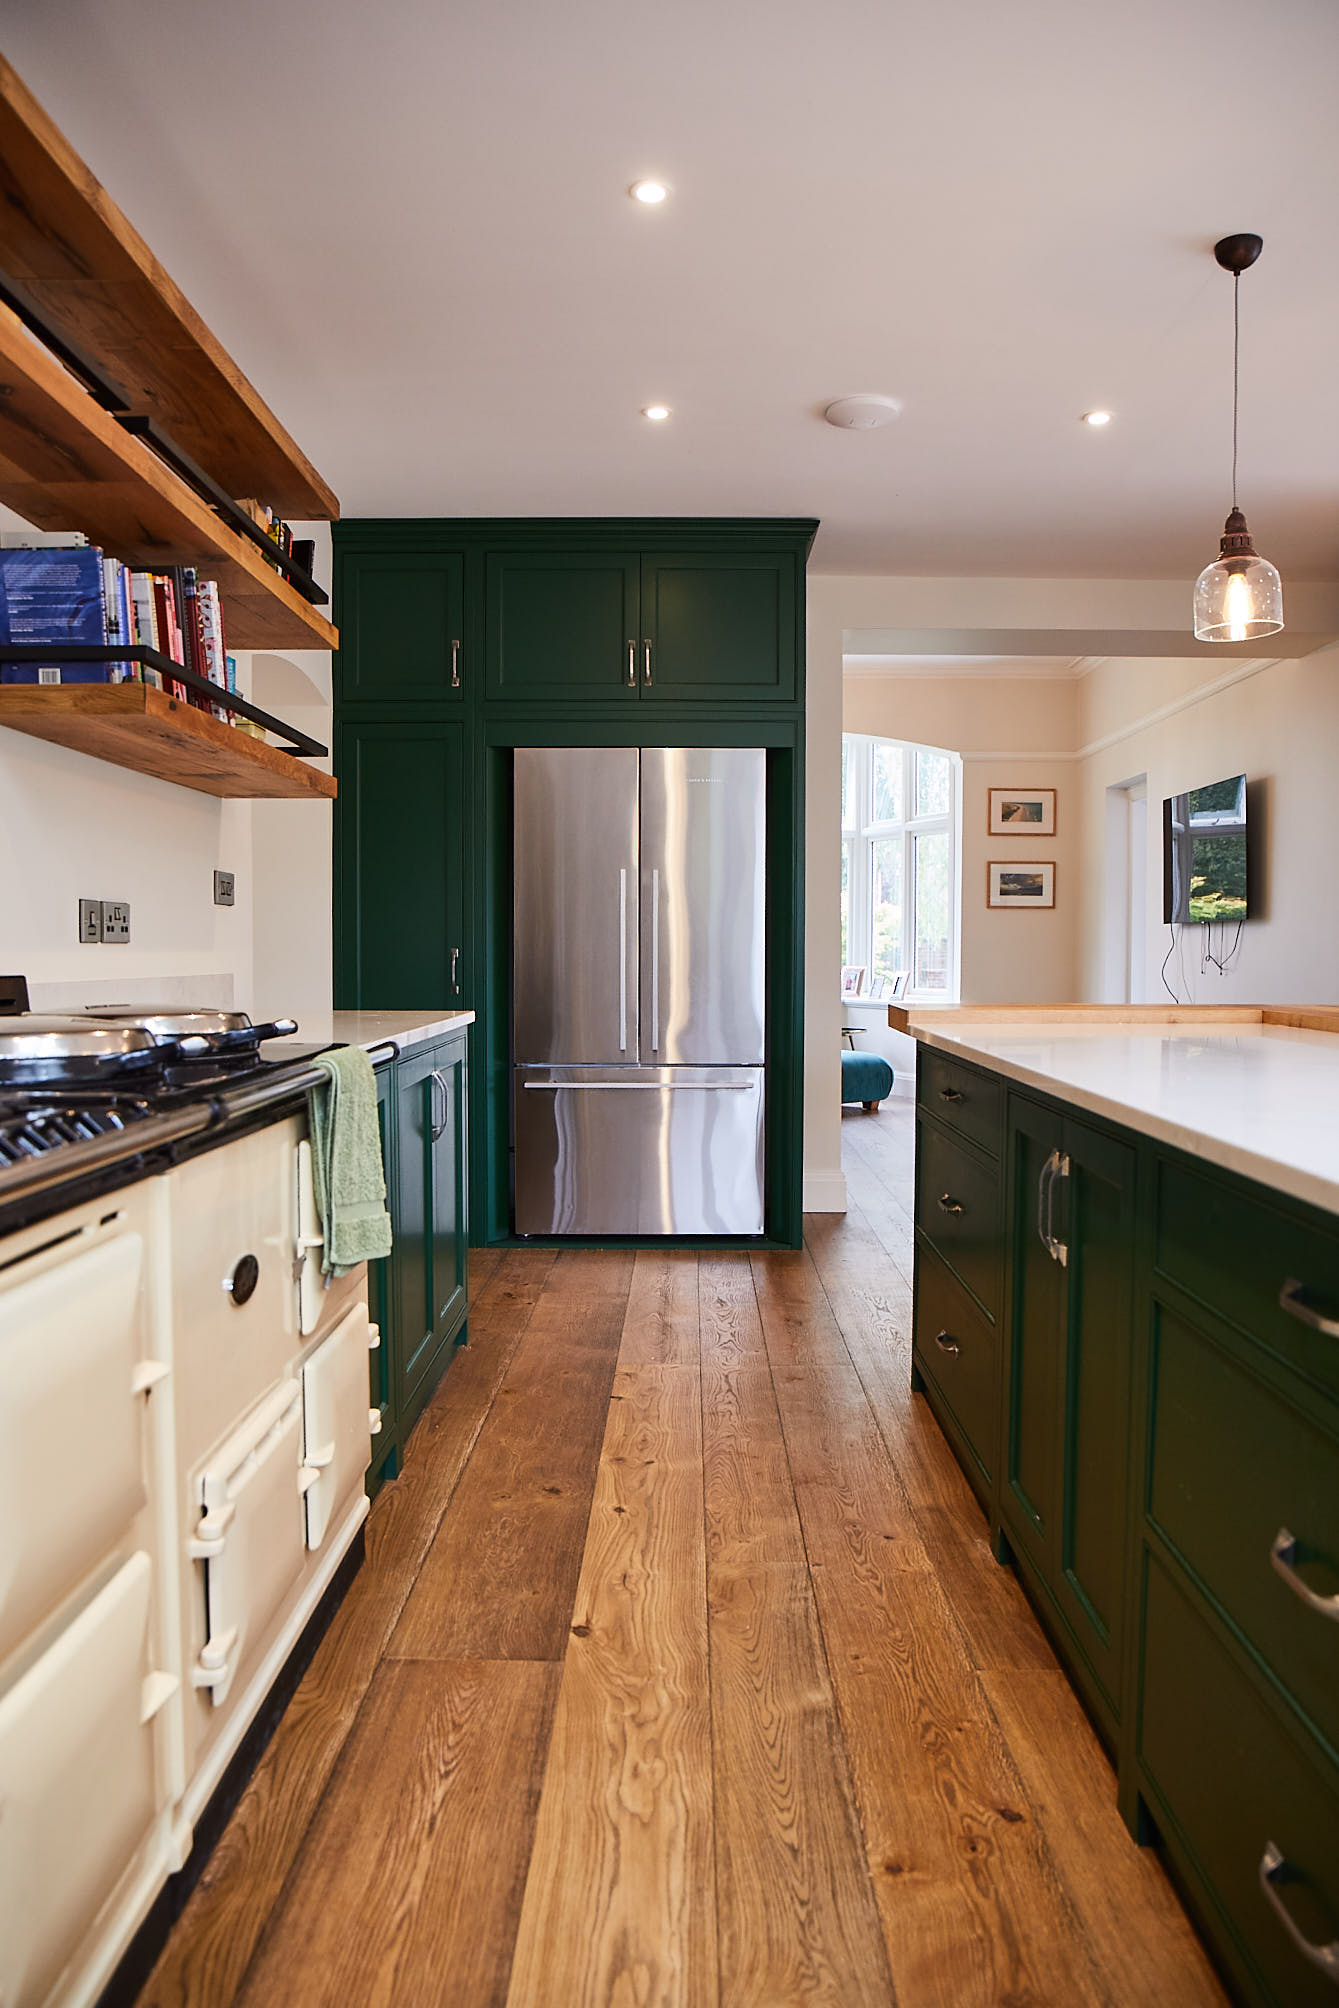 Fisher Paykel American fridge freezer integrated in the green bespoke kitchen cabinets